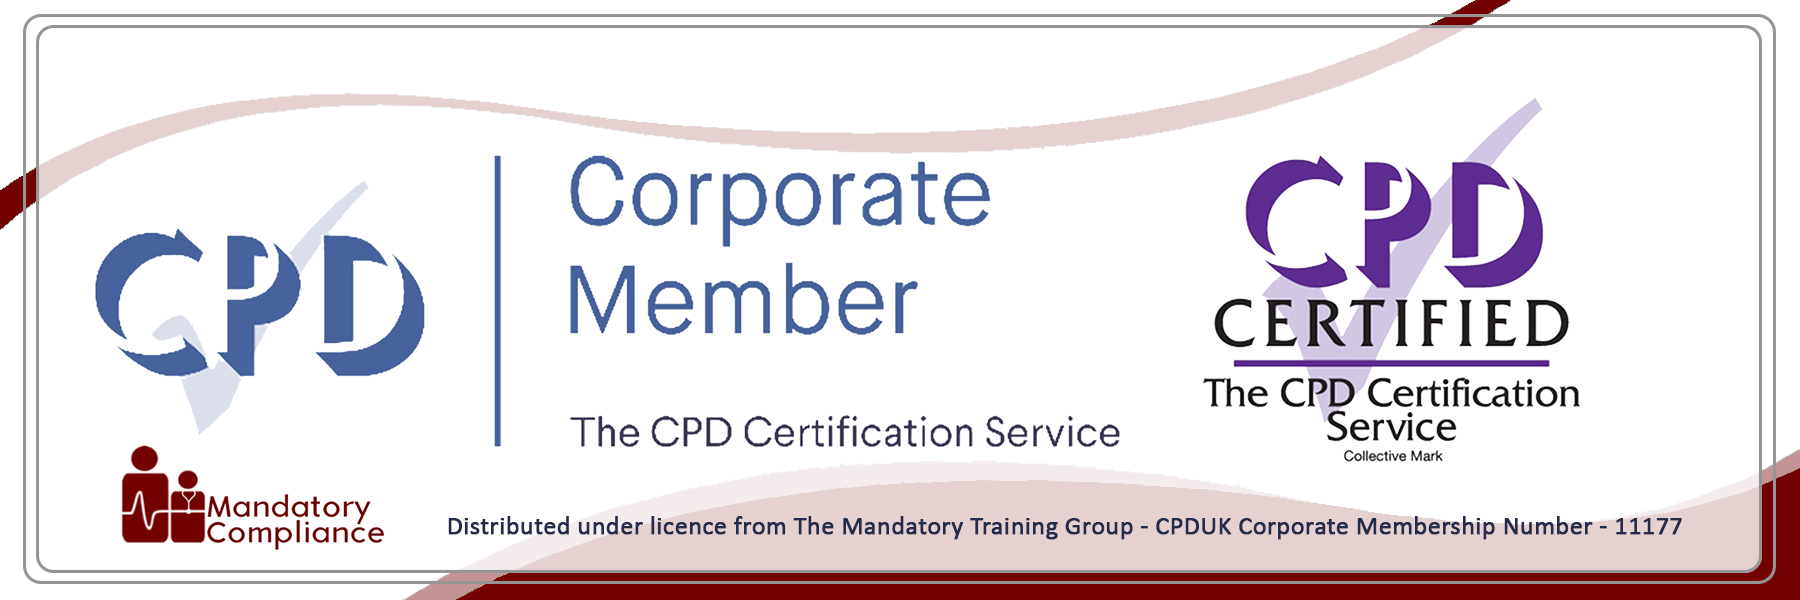 Goal Setting and Getting Things Done - Online Training Course - CPD Accredited - Mandatory Compliance UK -